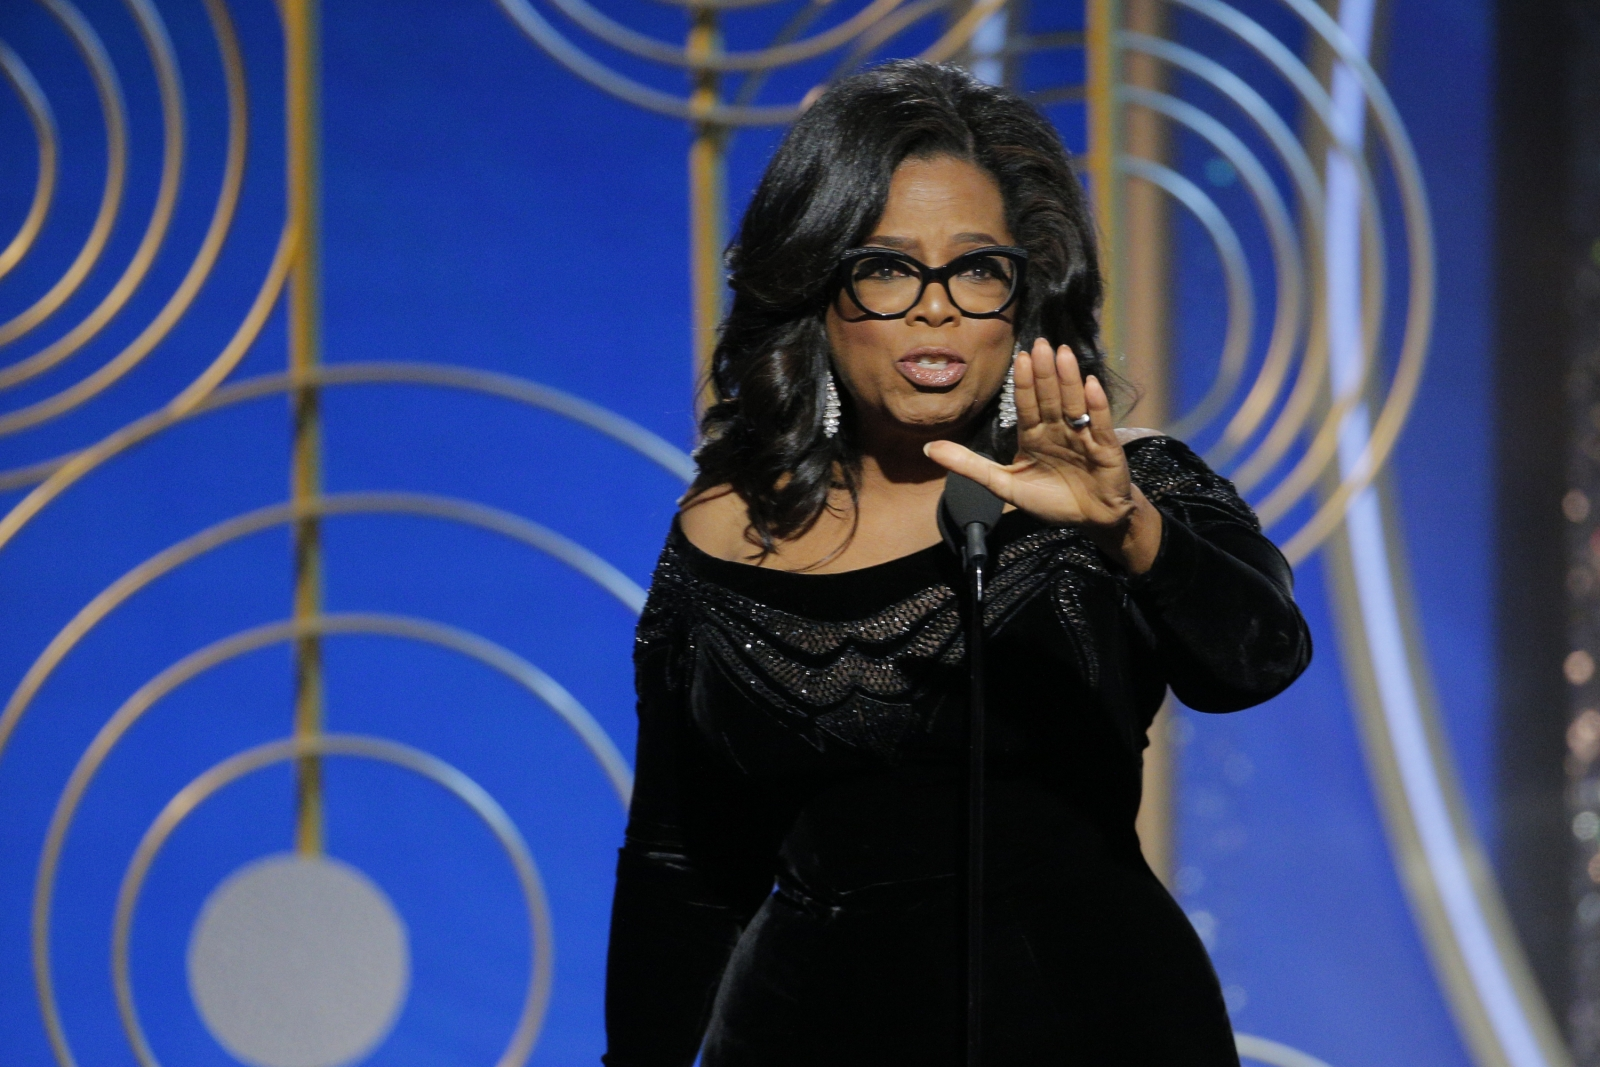 Donald Trump rules out Oprah Winfrey from contesting for President